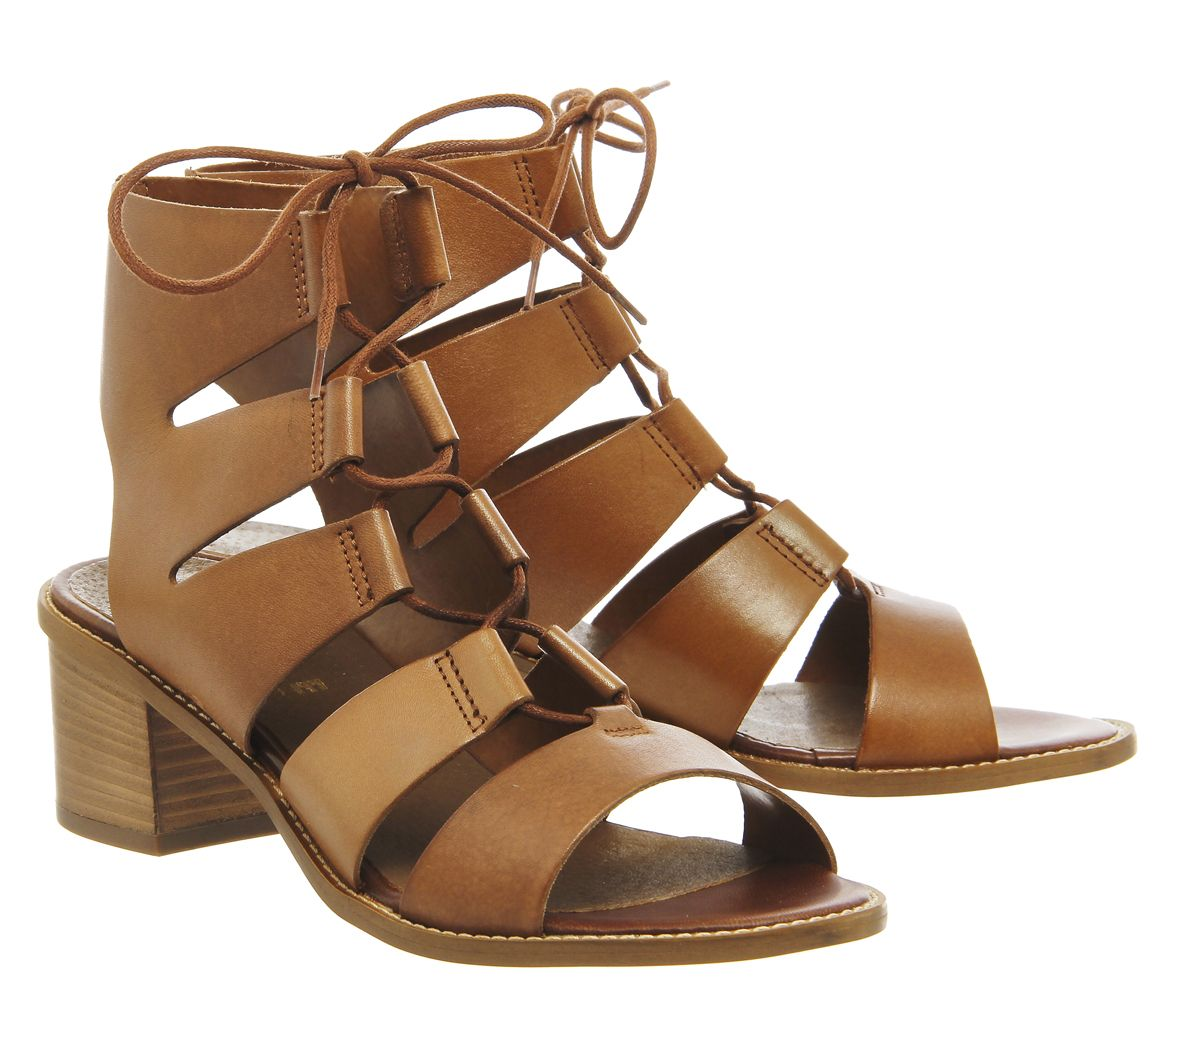 Office Wisteria Gilly Lace Up Block Heel Tan Leather Mid Heels